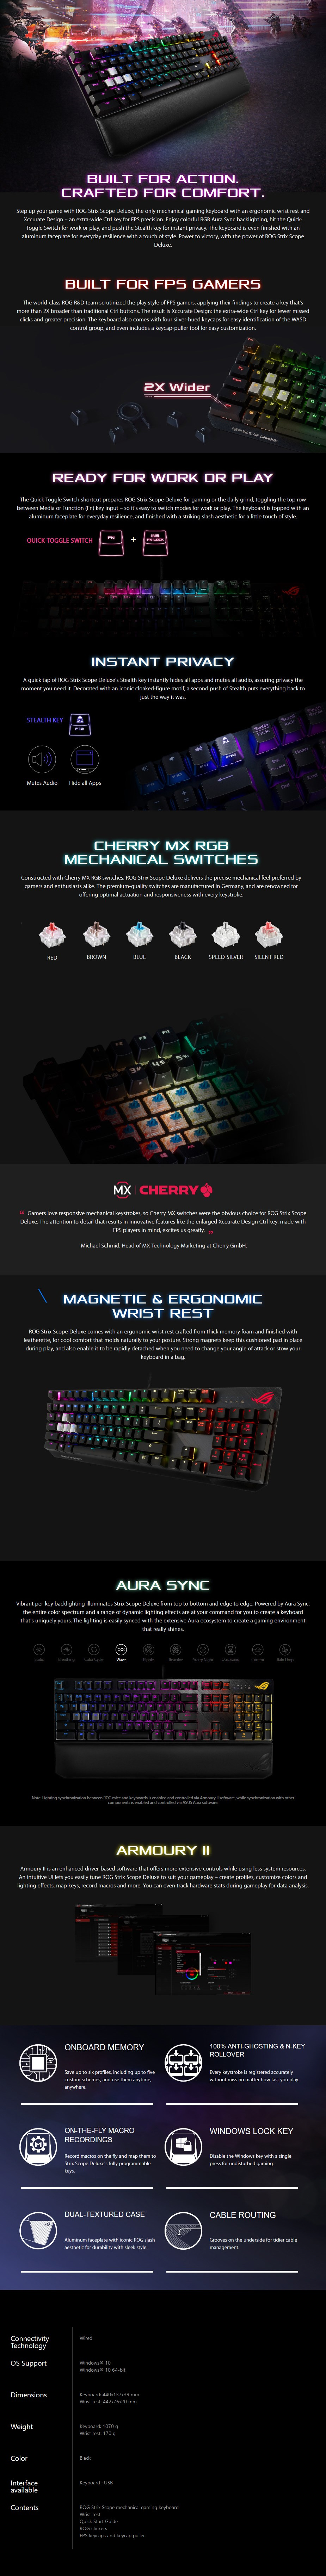 asus-rog-strix-scope-deluxe-rgba-mechanical-gaming-keyboard-cherry-mx-red-ac28584-8-1-.jpg